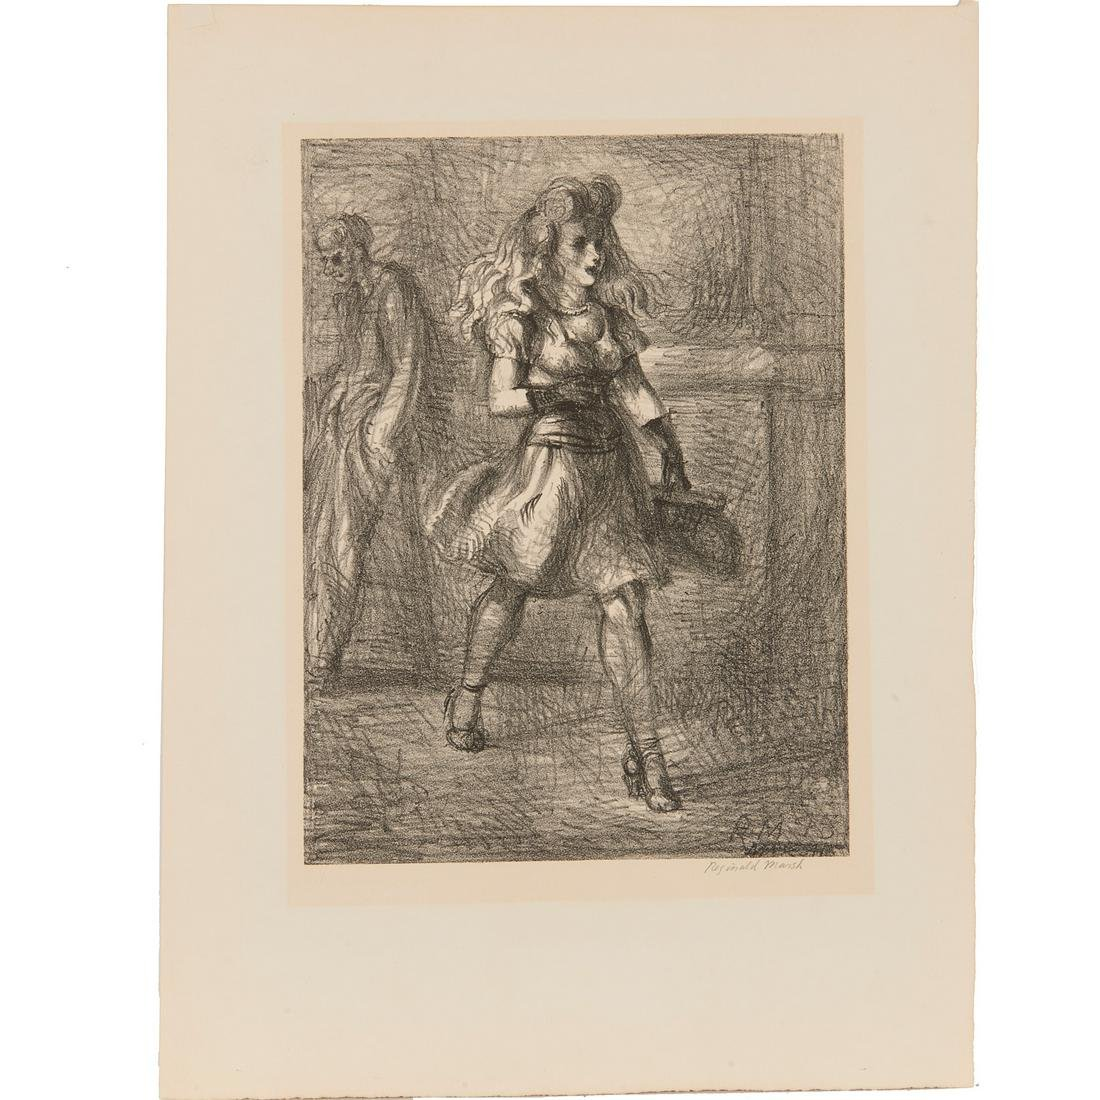 Reginald Marsh, lithograph